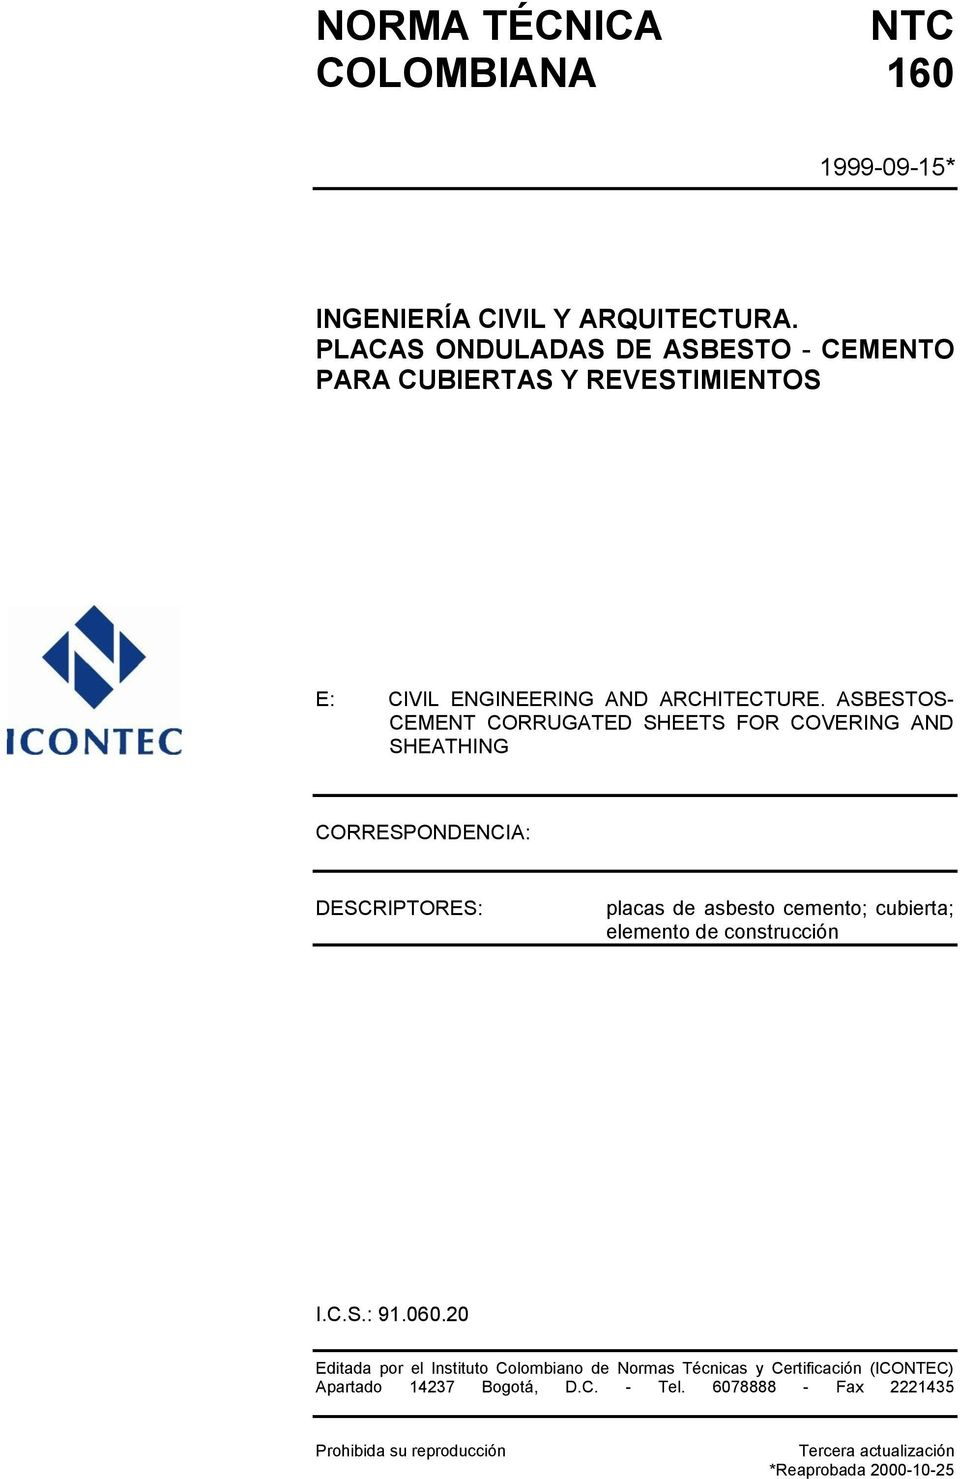 ASBESTOS- CEMENT CORRUGATED SHEETS FOR COVERING AND SHEATHING CORRESPONDENCIA: DESCRIPTORES: placas de asbesto cemento; cubierta; elemento de